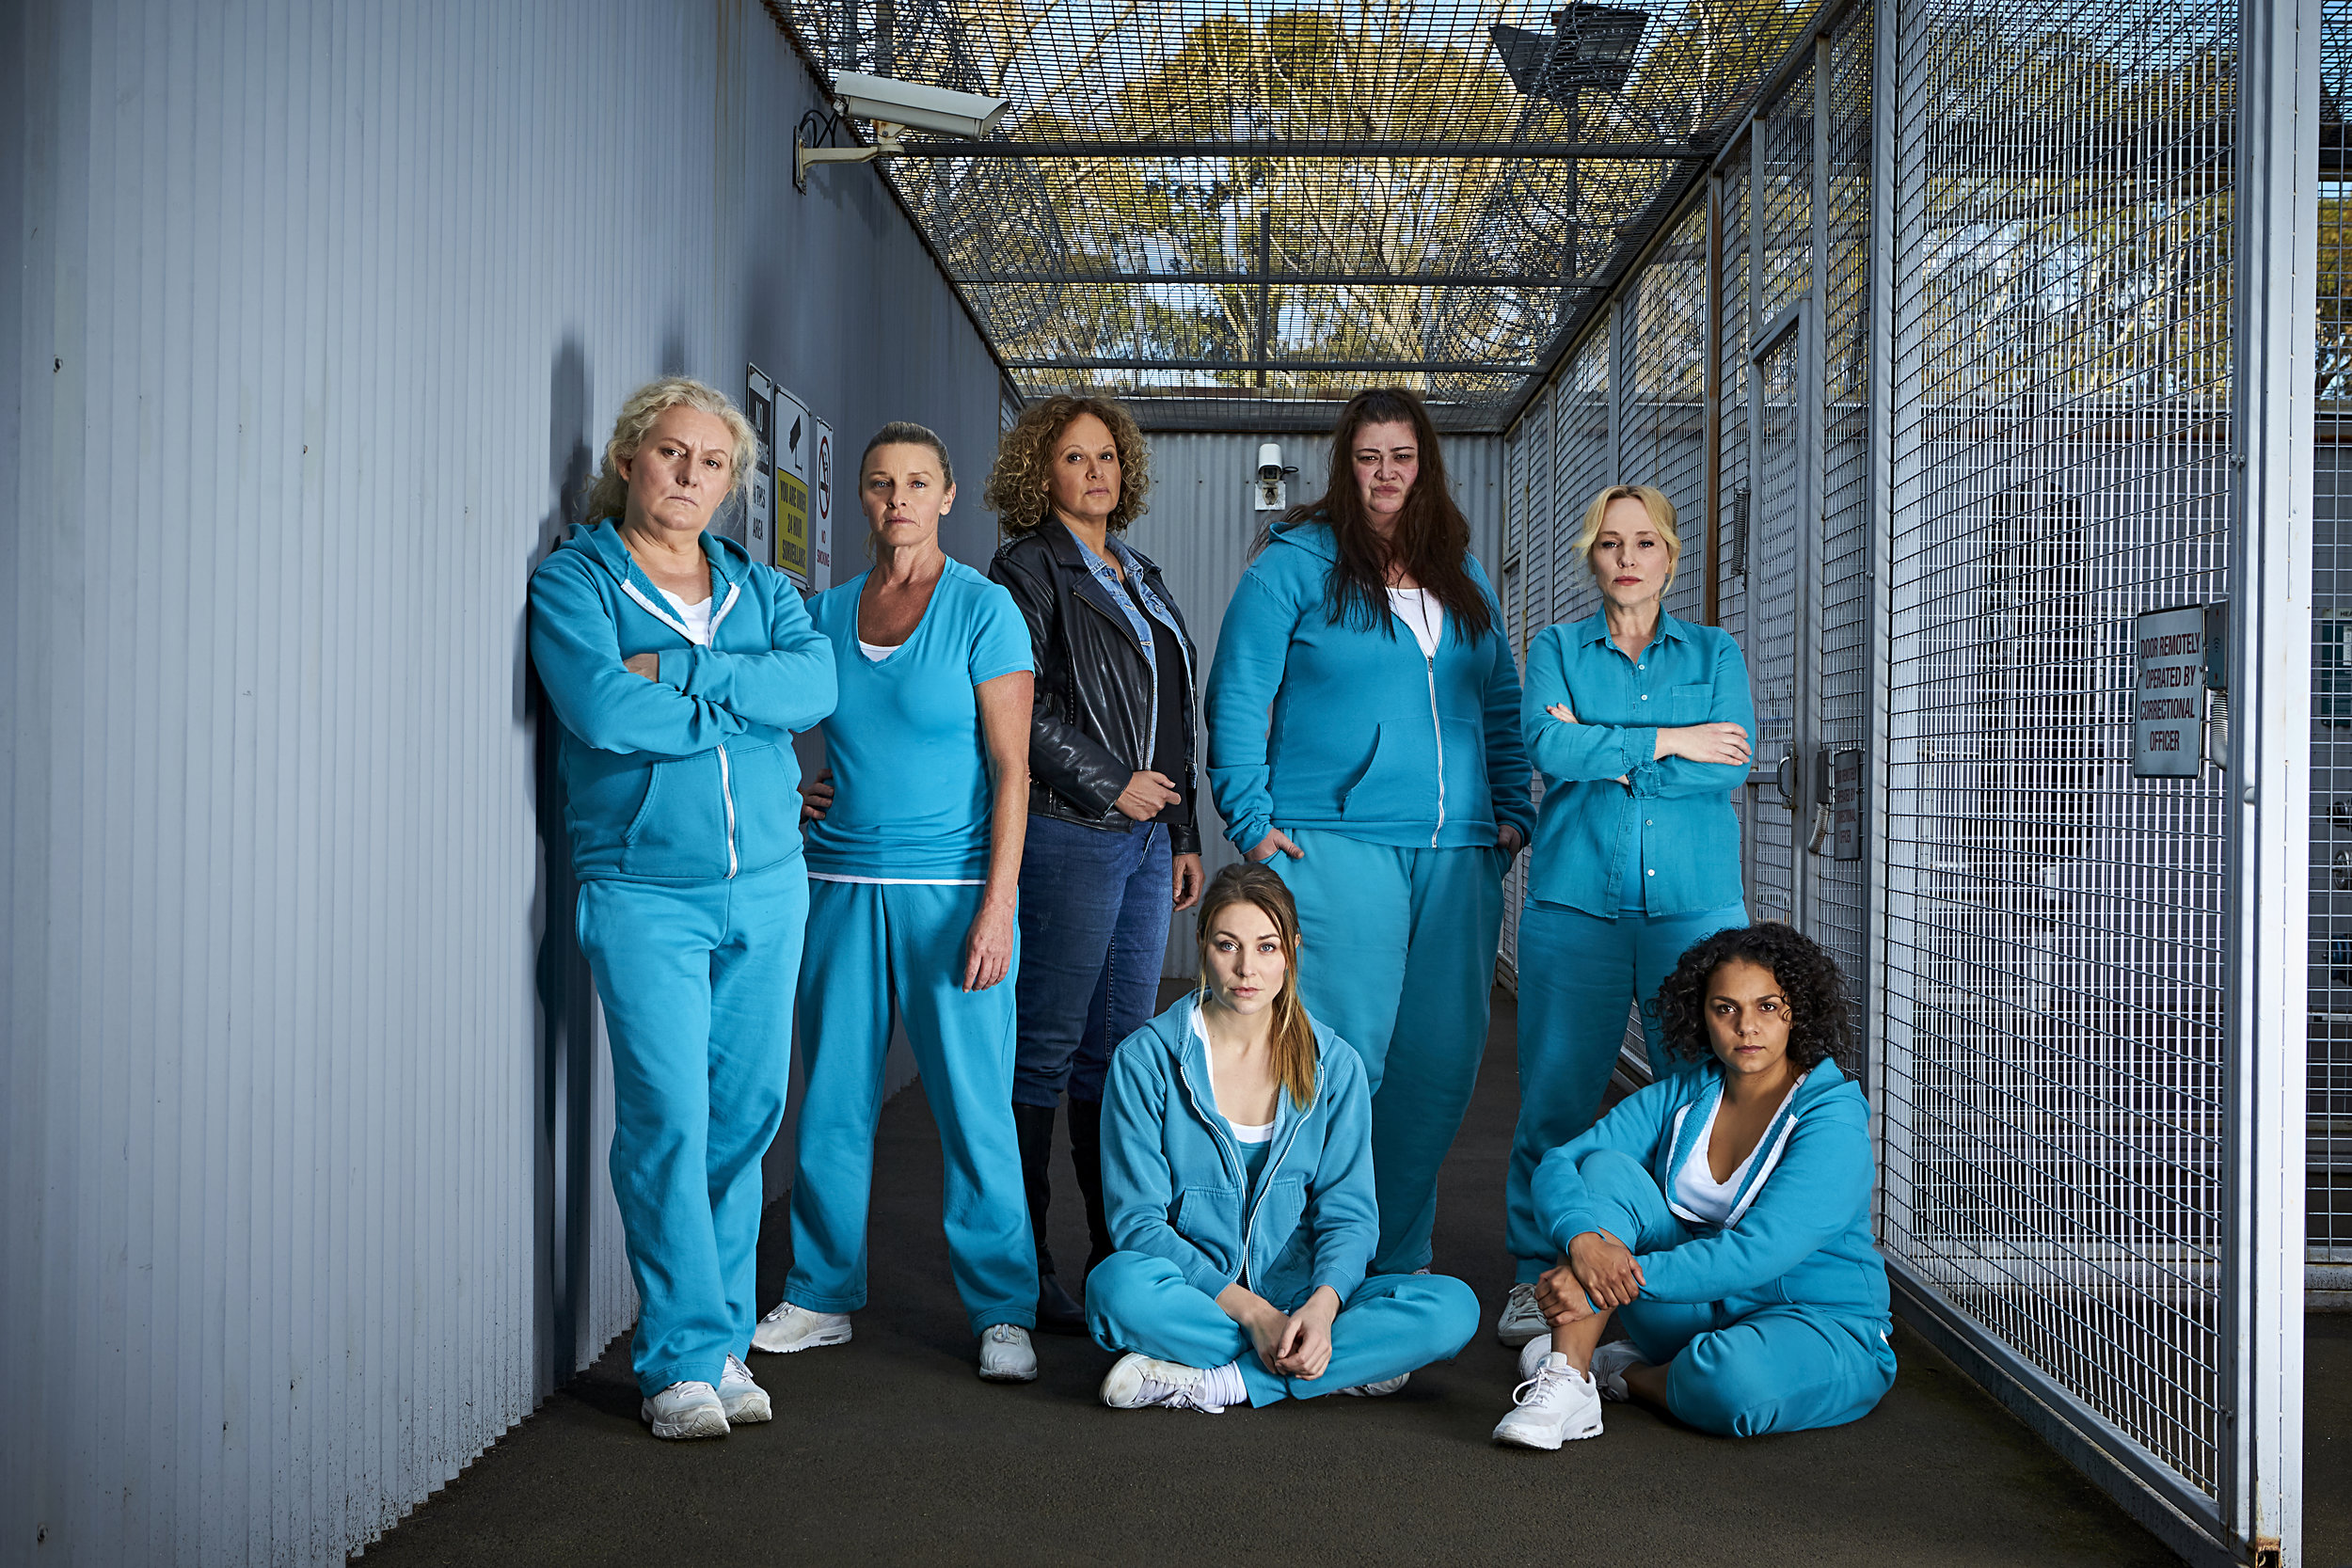 WWS7 - Celia Ireland, Tammy MacIntosh, Leah Purcell, Kate Jenkinson, Katrina Milosevic, Susie Porter and Rarriwuy Hick (Photo by Narelle Portanier).jpg